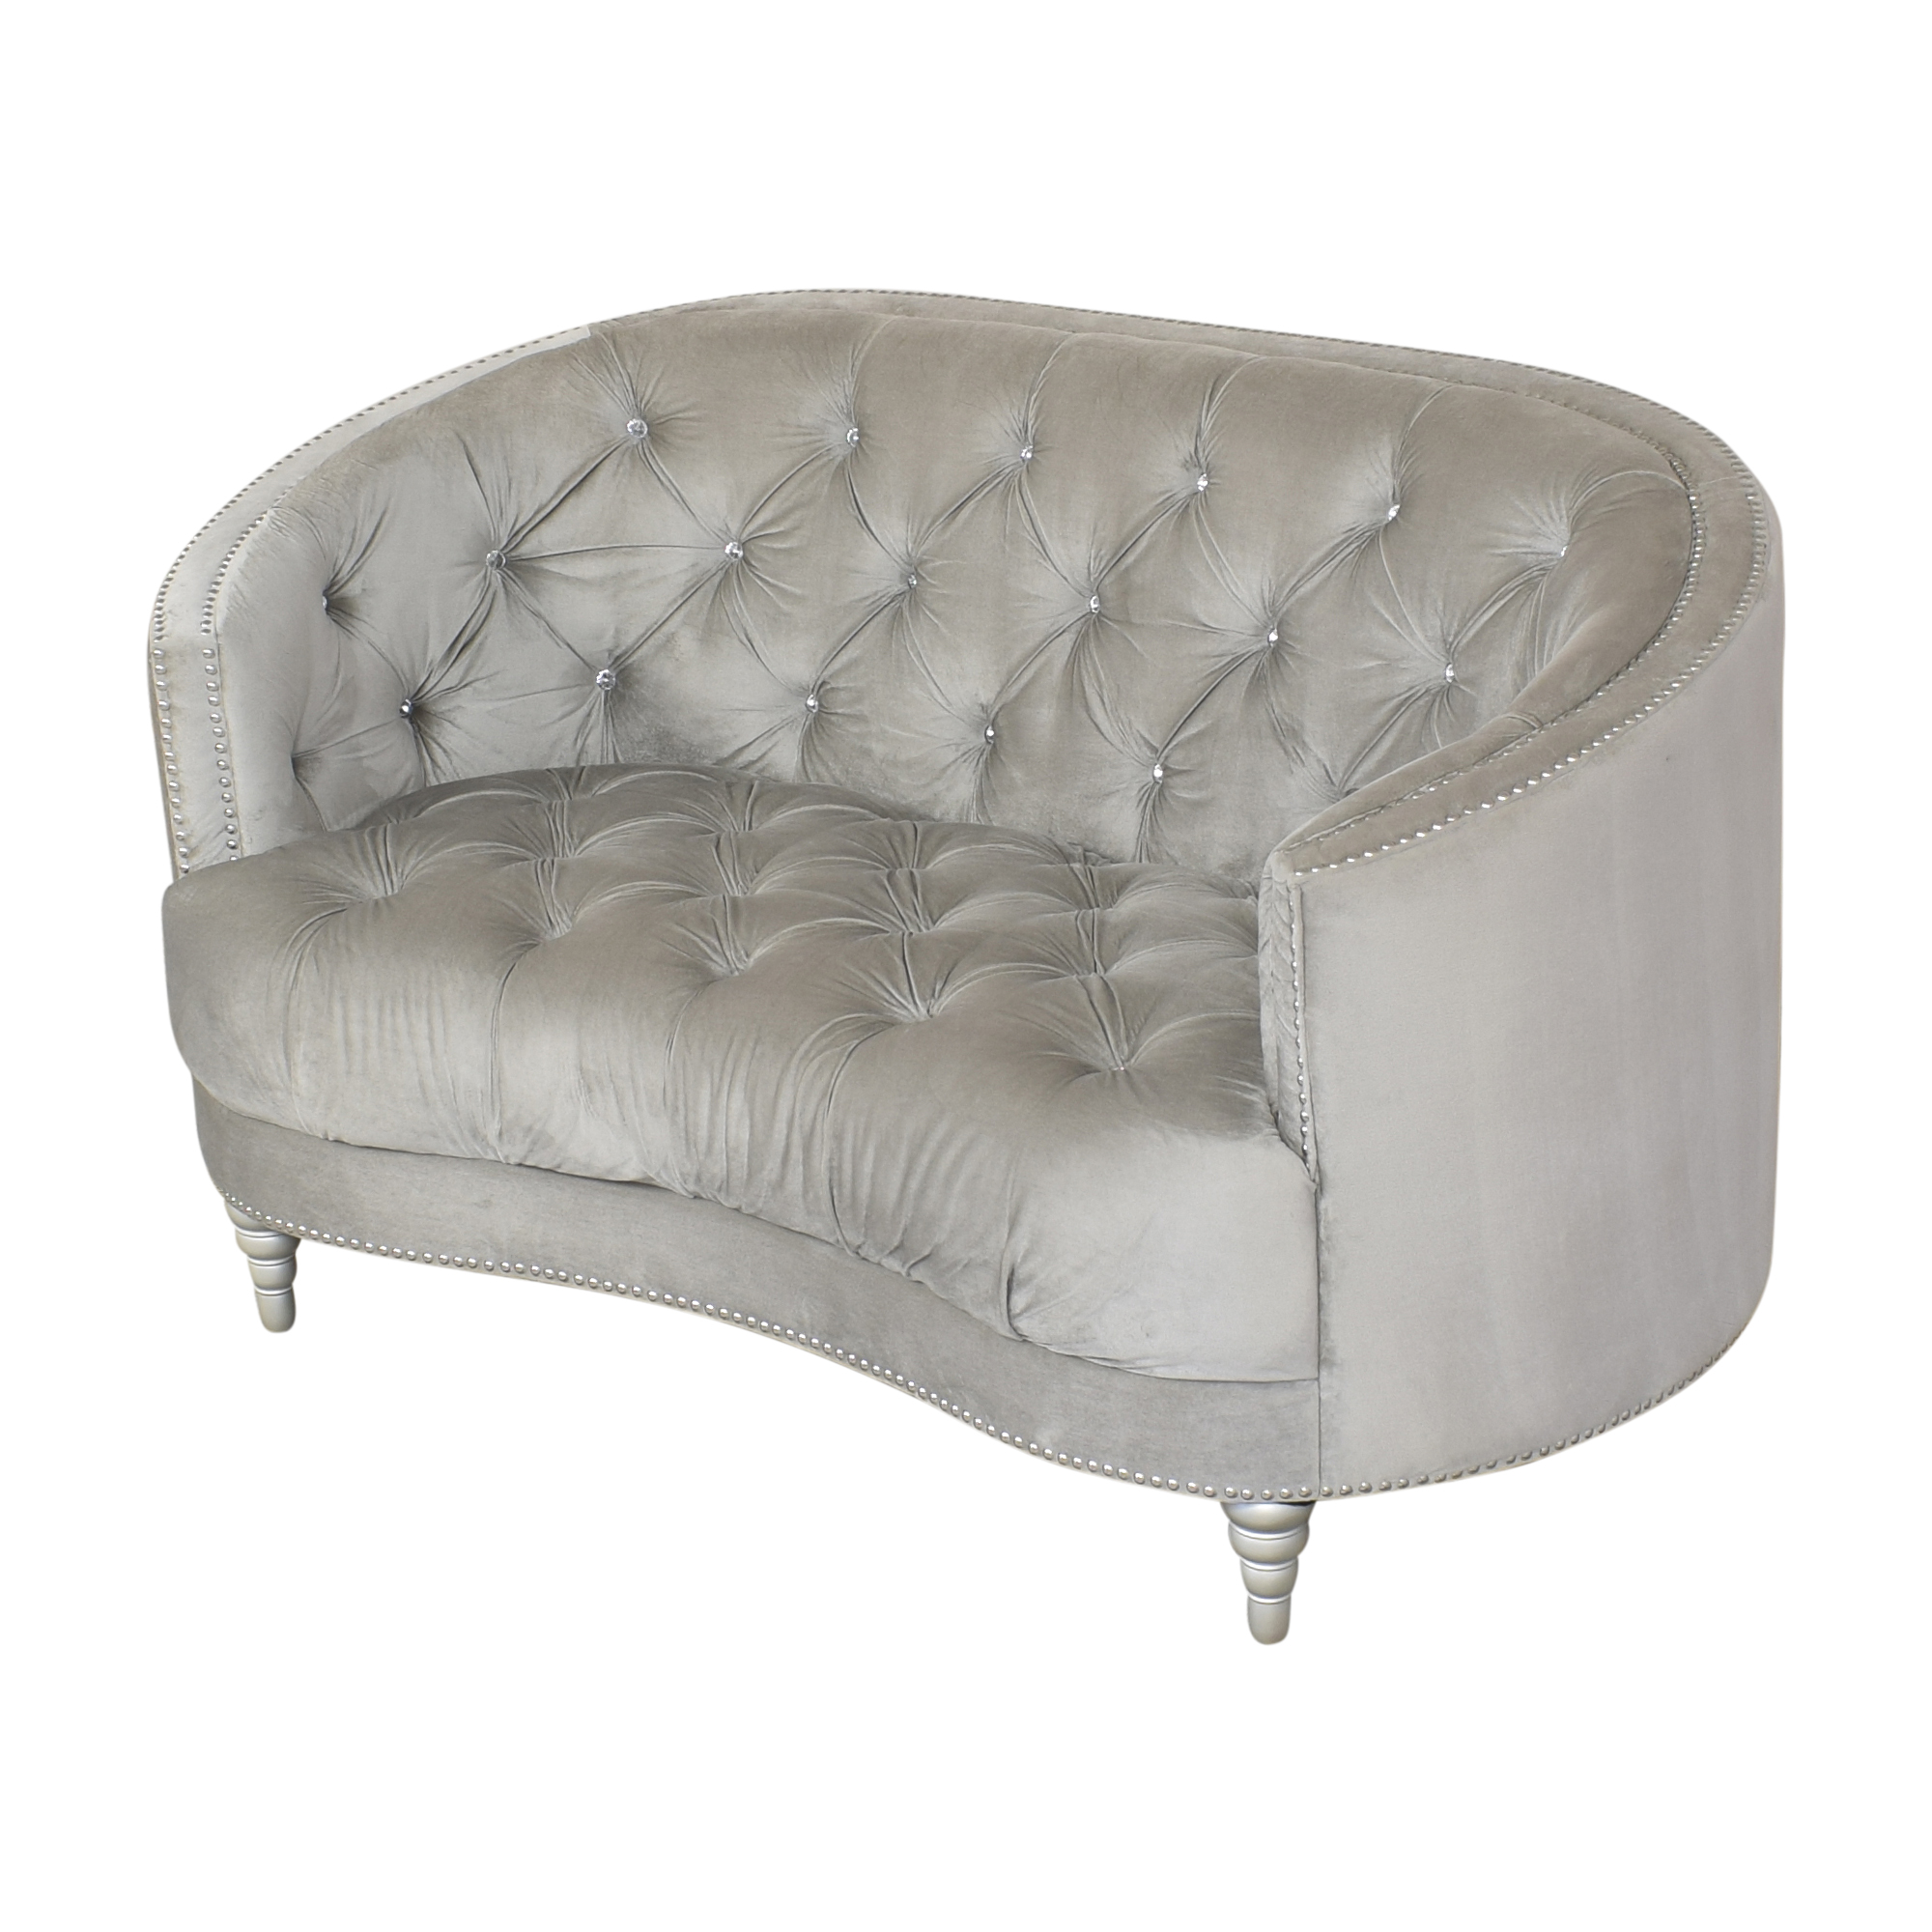 Coaster Fine Furniture Coaster Fine Furniture Avonlea Tufted Loveseat ma